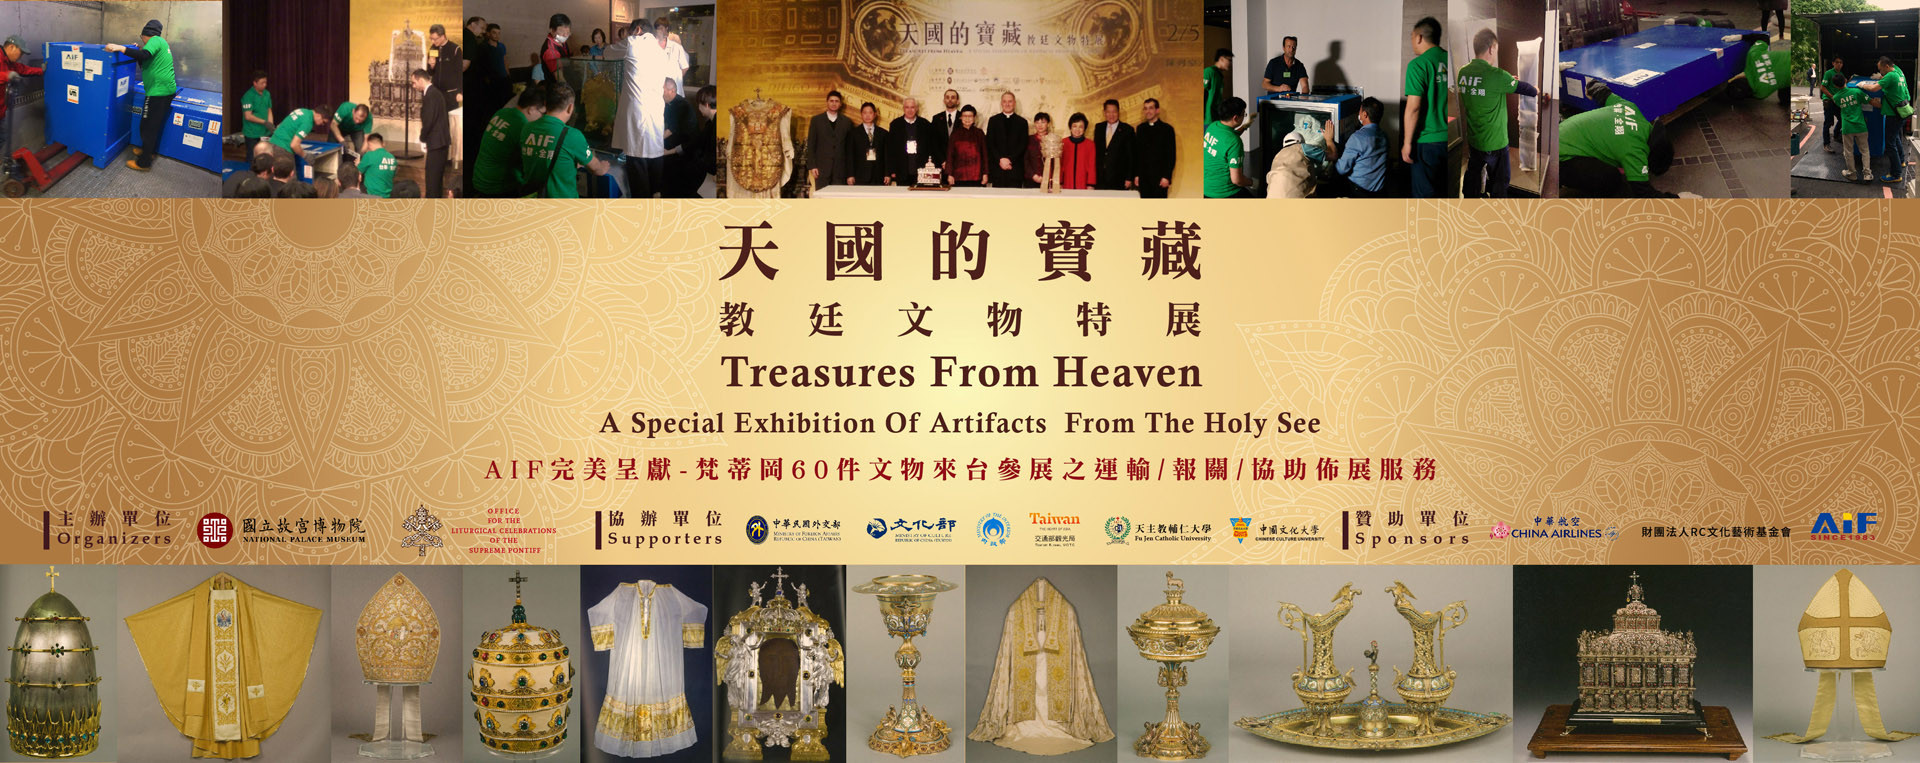 Treasures From Heaven